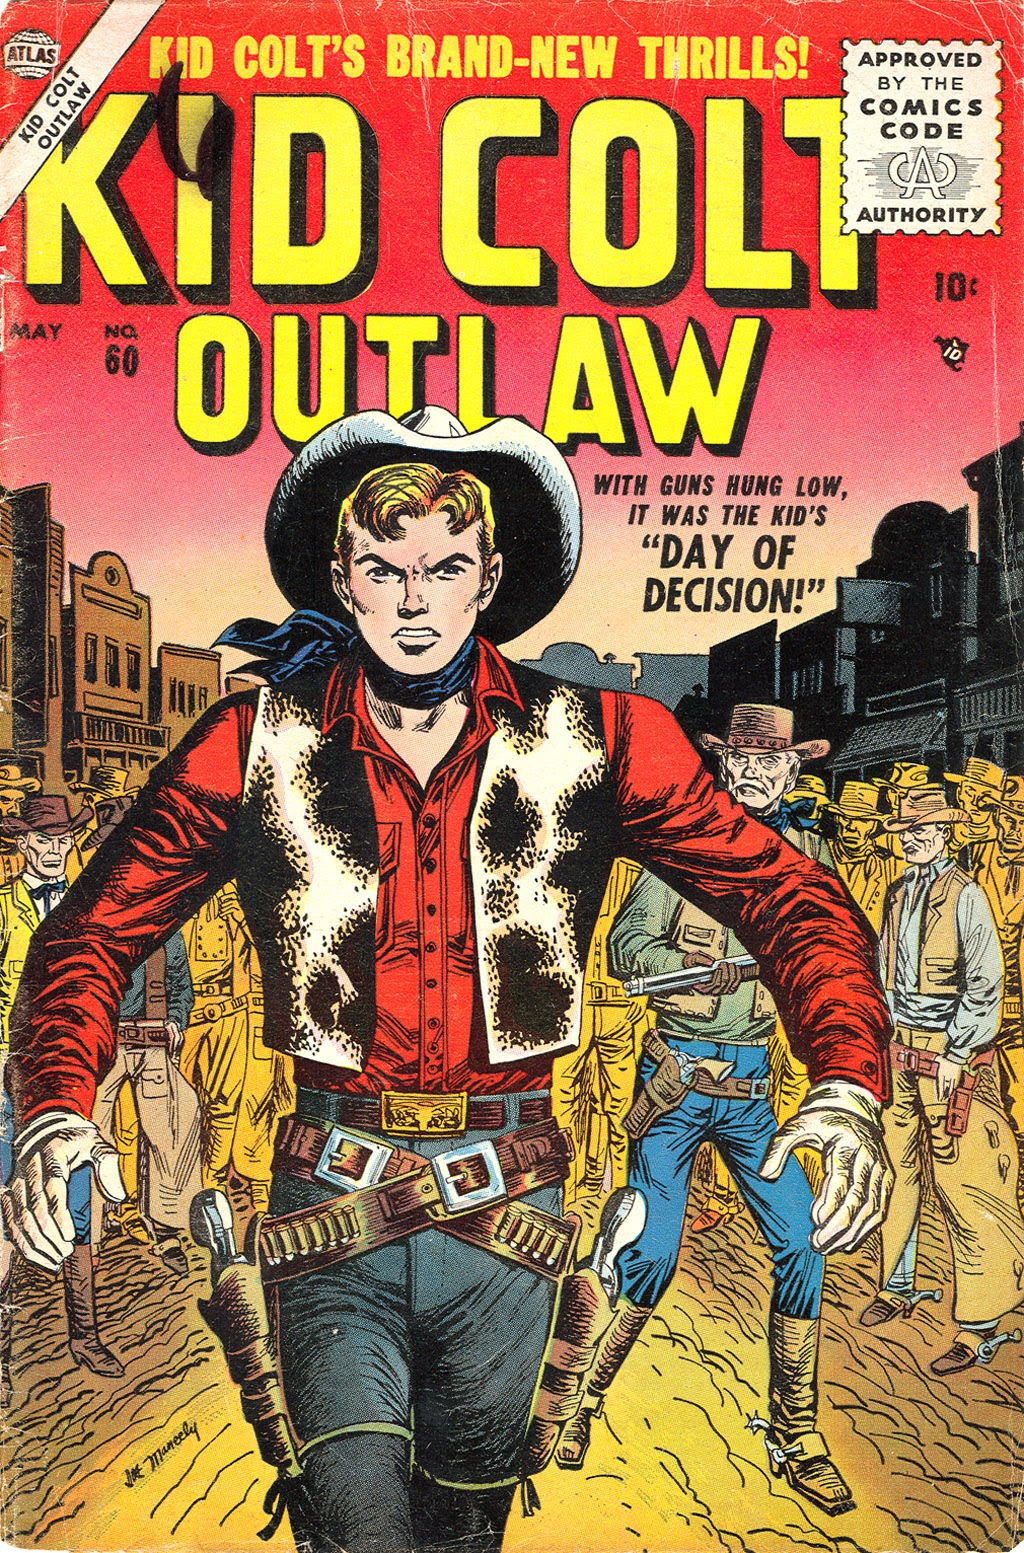 Kid Colt Outlaw issue 60 - Page 1